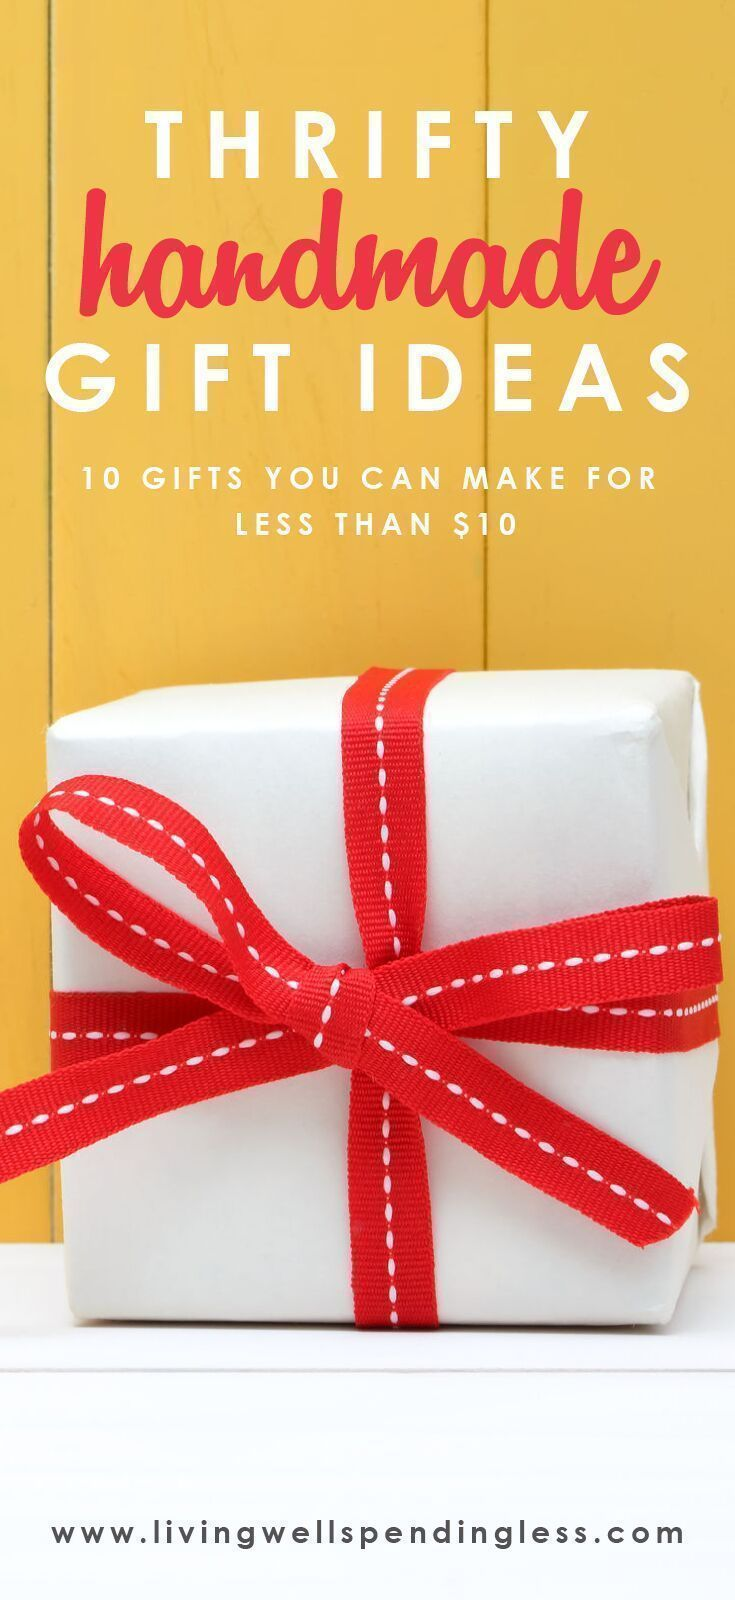 10 Gifts You Can Make for $10 or Less   Easy diy gifts ...